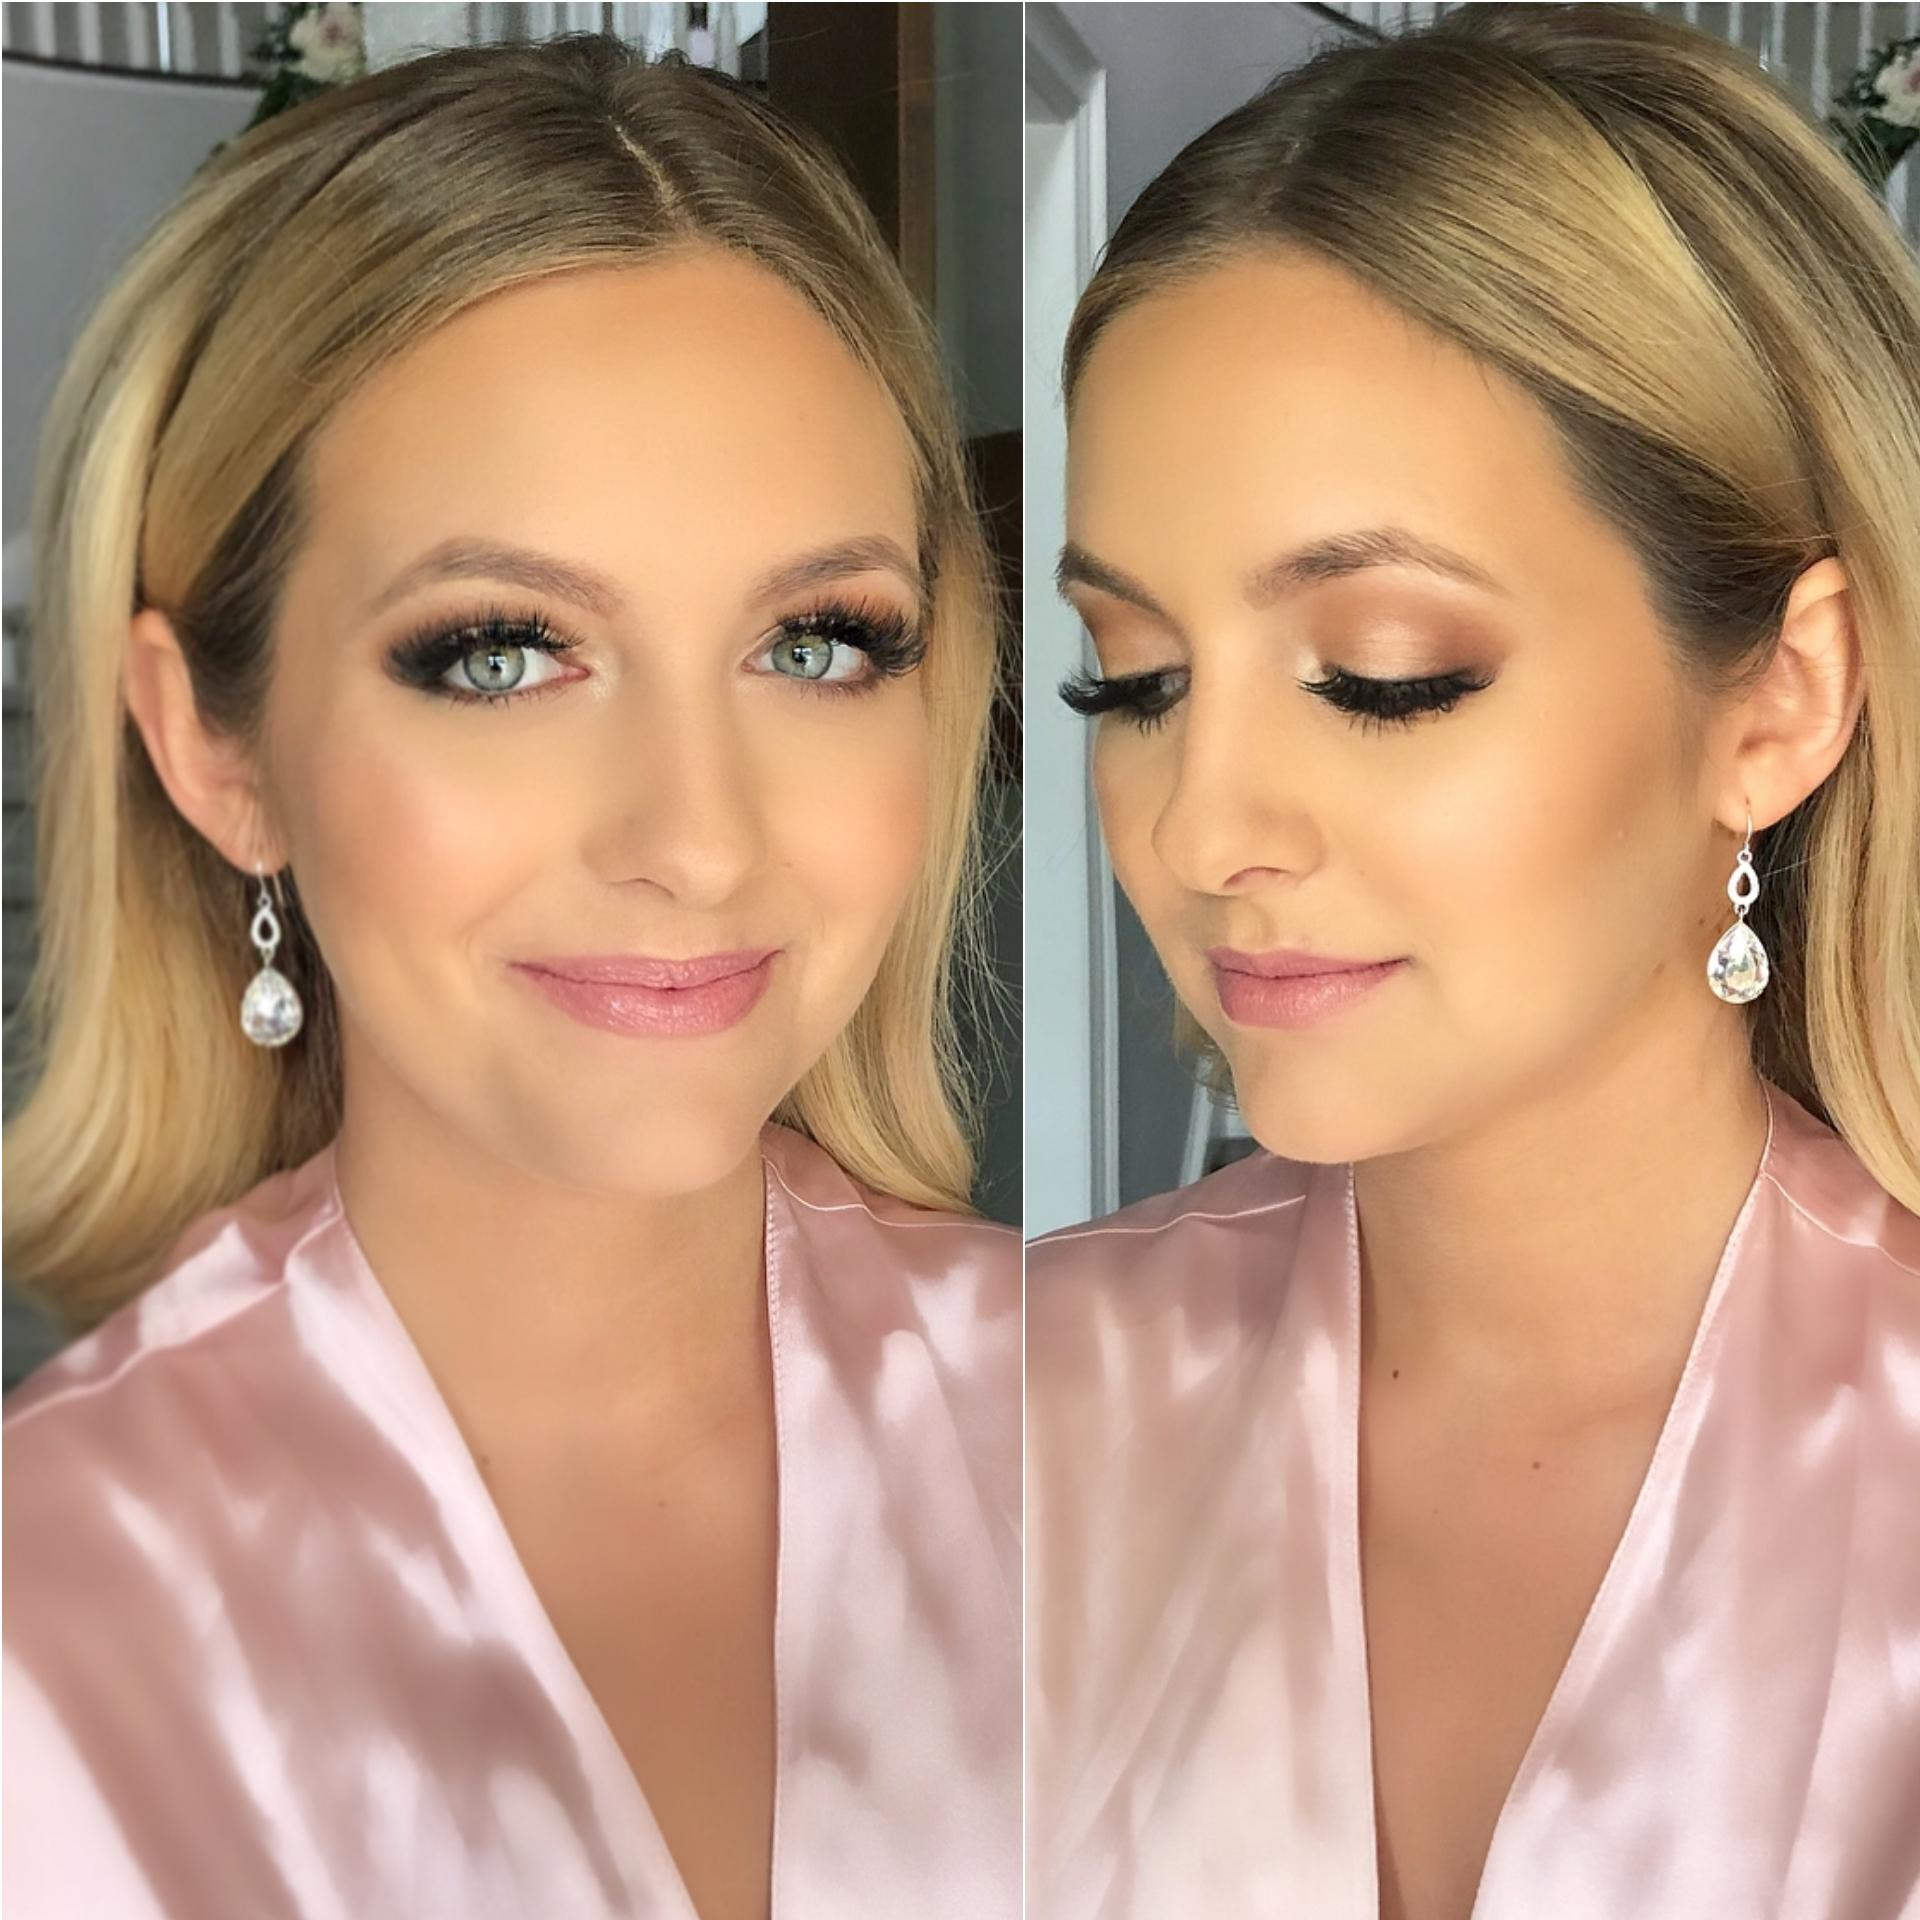 Luxury Hair and Makeup For Brides